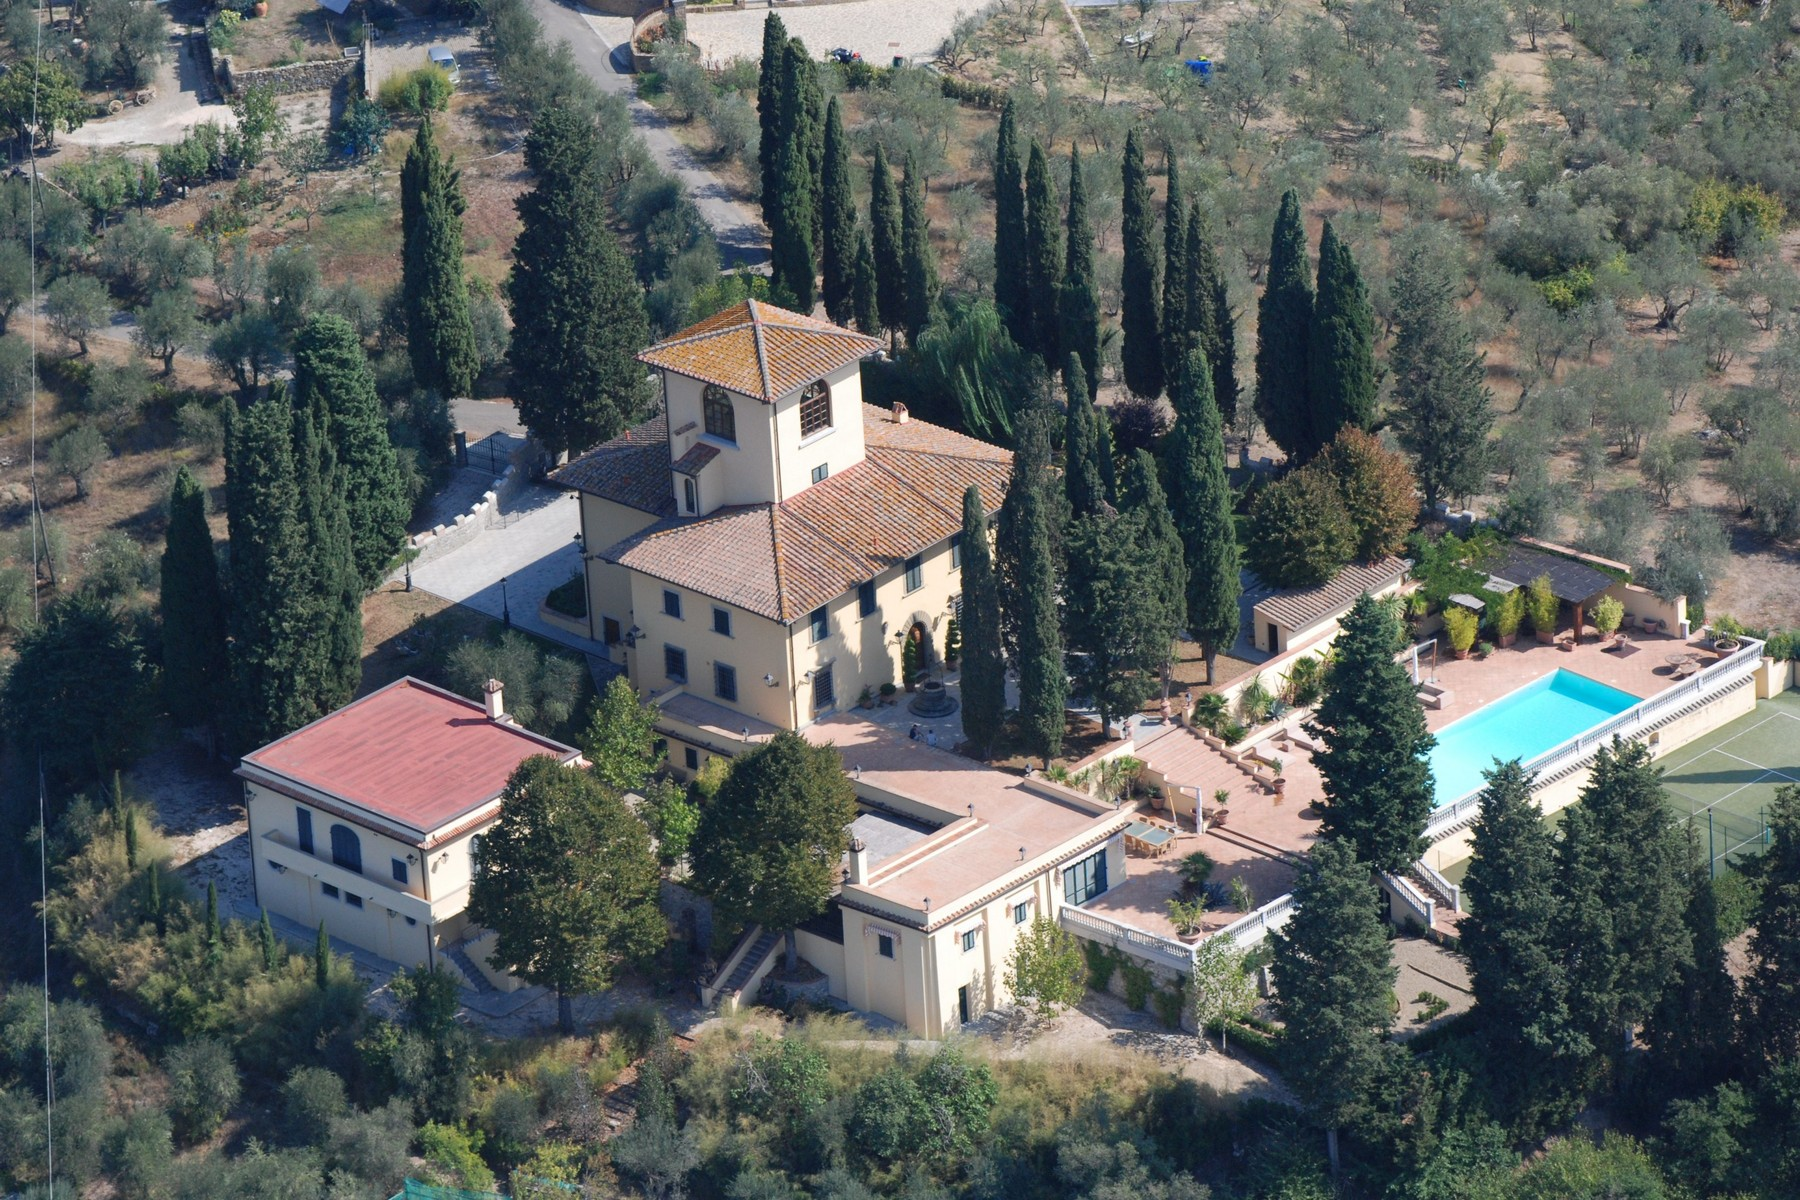 Single Family Home for Sale at An exclusive, fully restored 14th century villa with every commodity in Florence Via Belvedere Bagno A Ripoli, Florence 50100 Italy